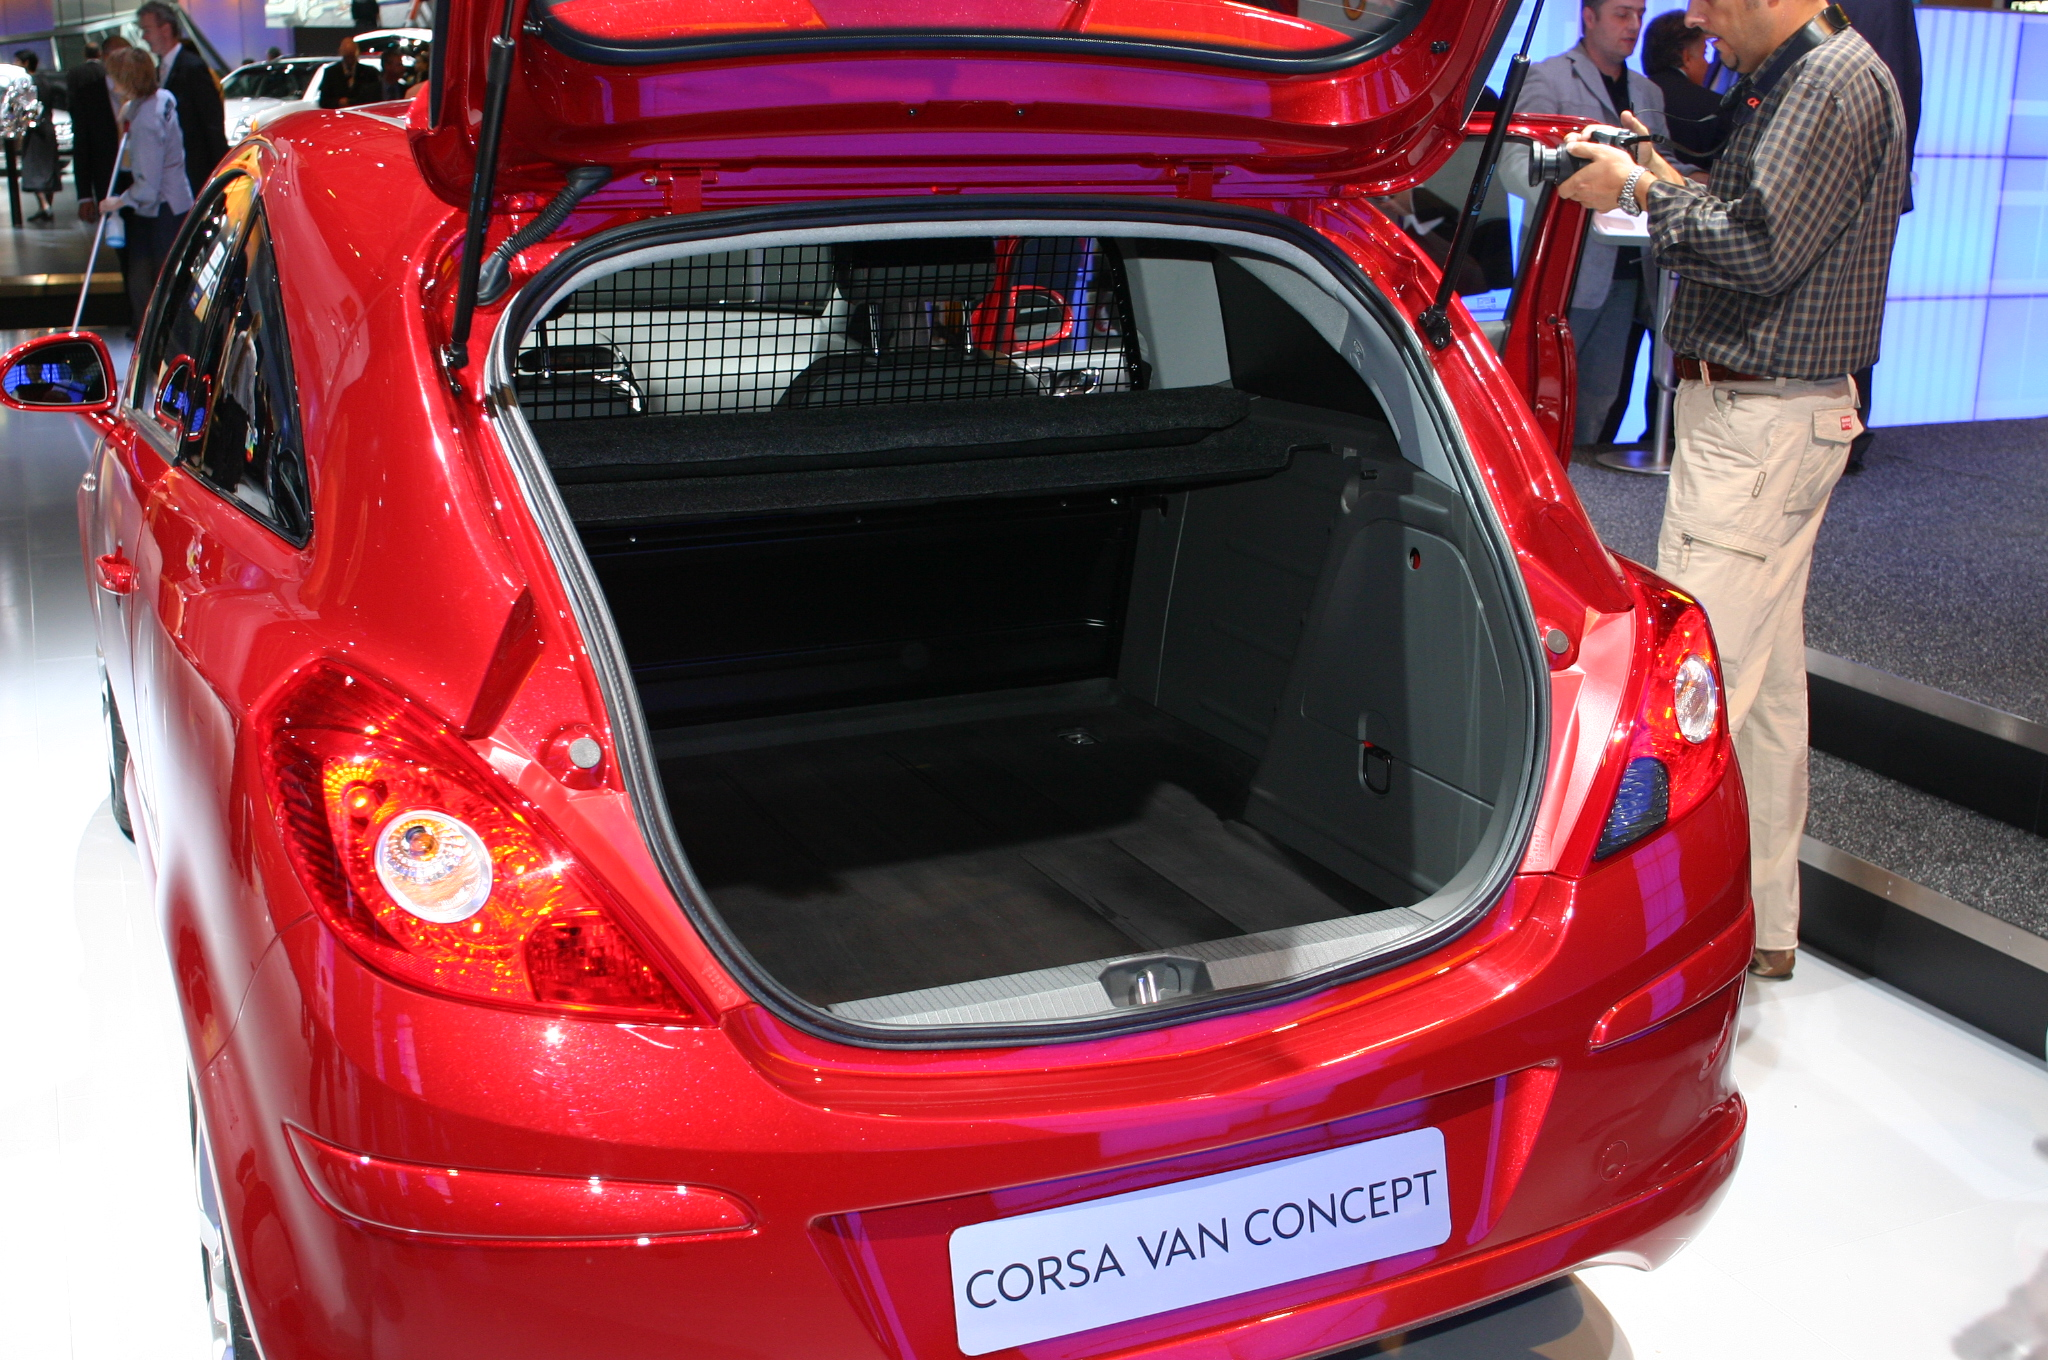 photos opel corsa van concept. Black Bedroom Furniture Sets. Home Design Ideas